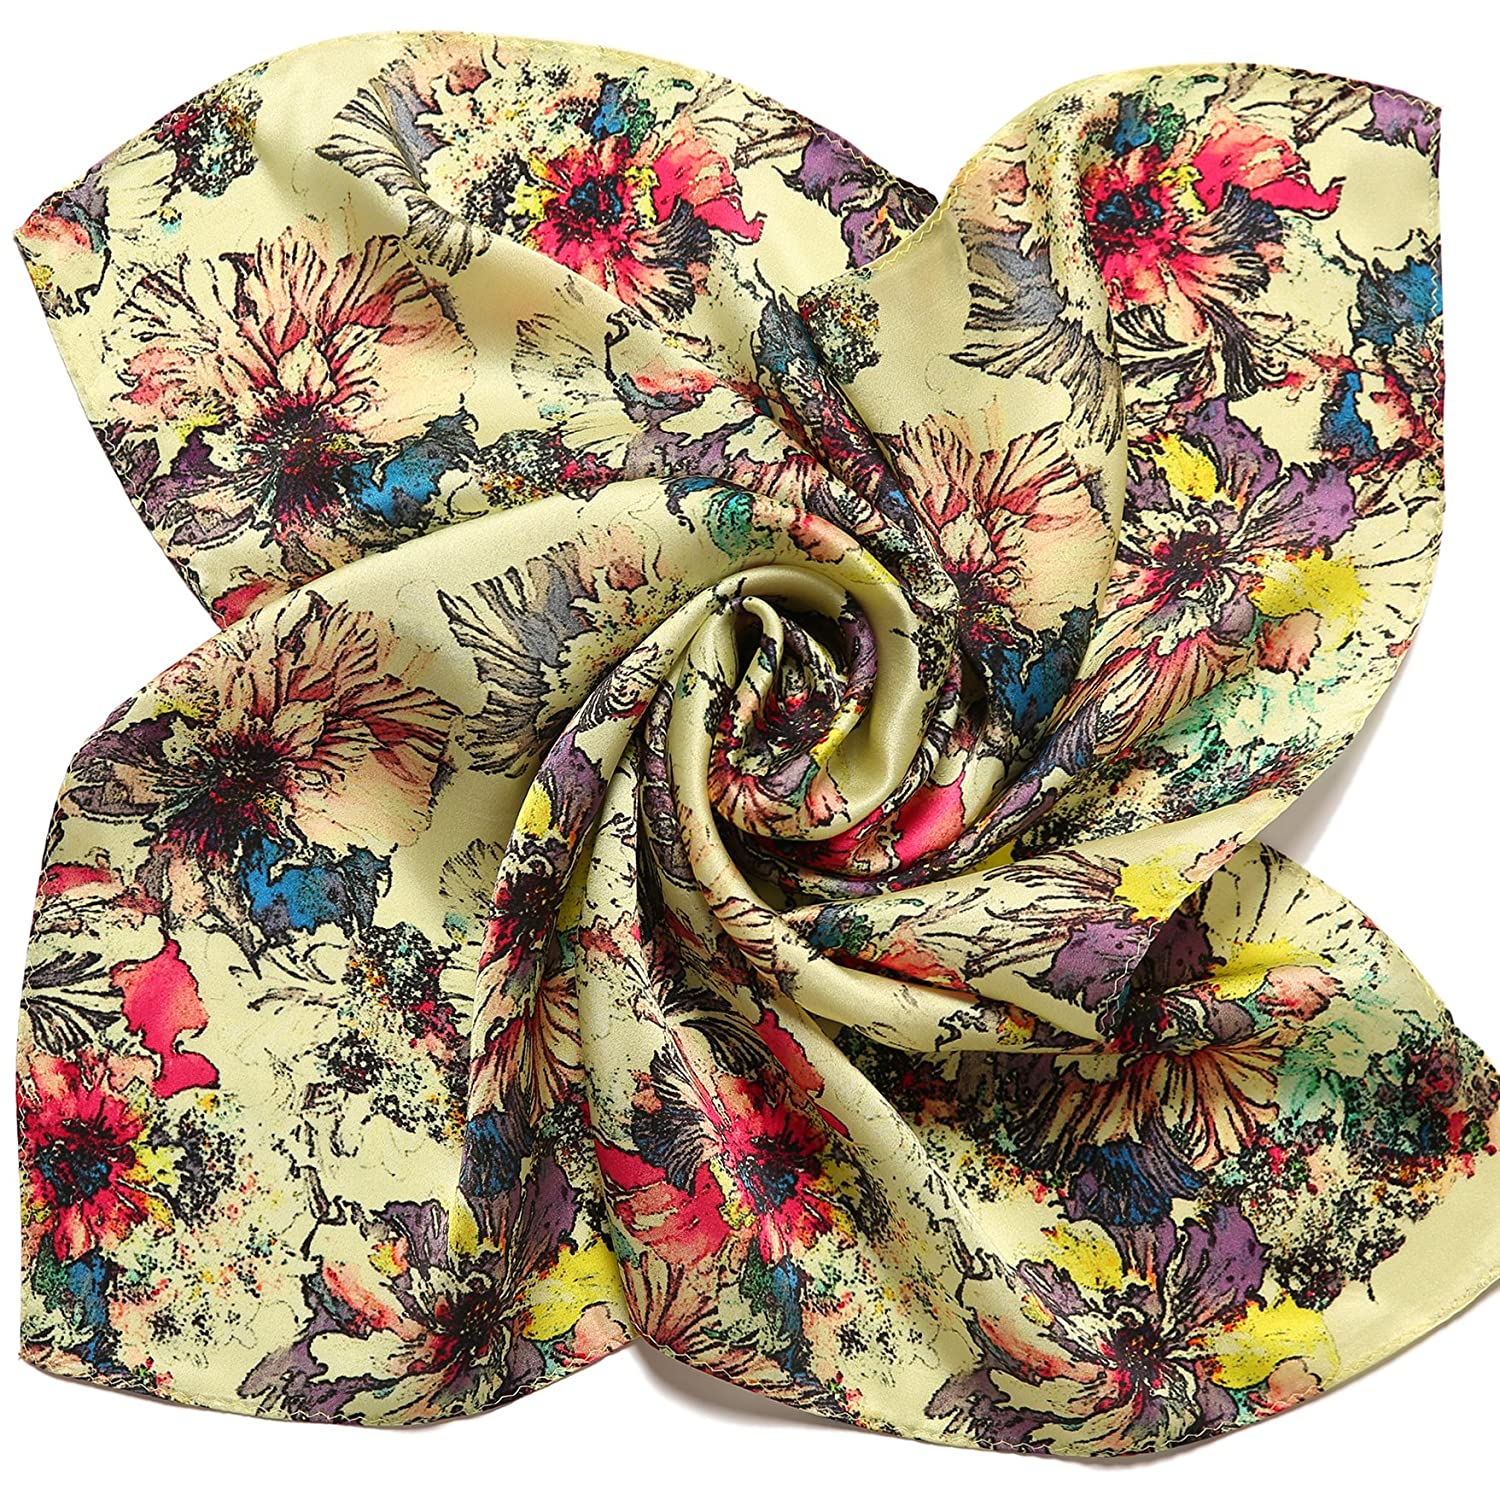 Luciphia ACCESSORY レディース B075WPX32B One Size|Floral-9 Floral-9 One Size